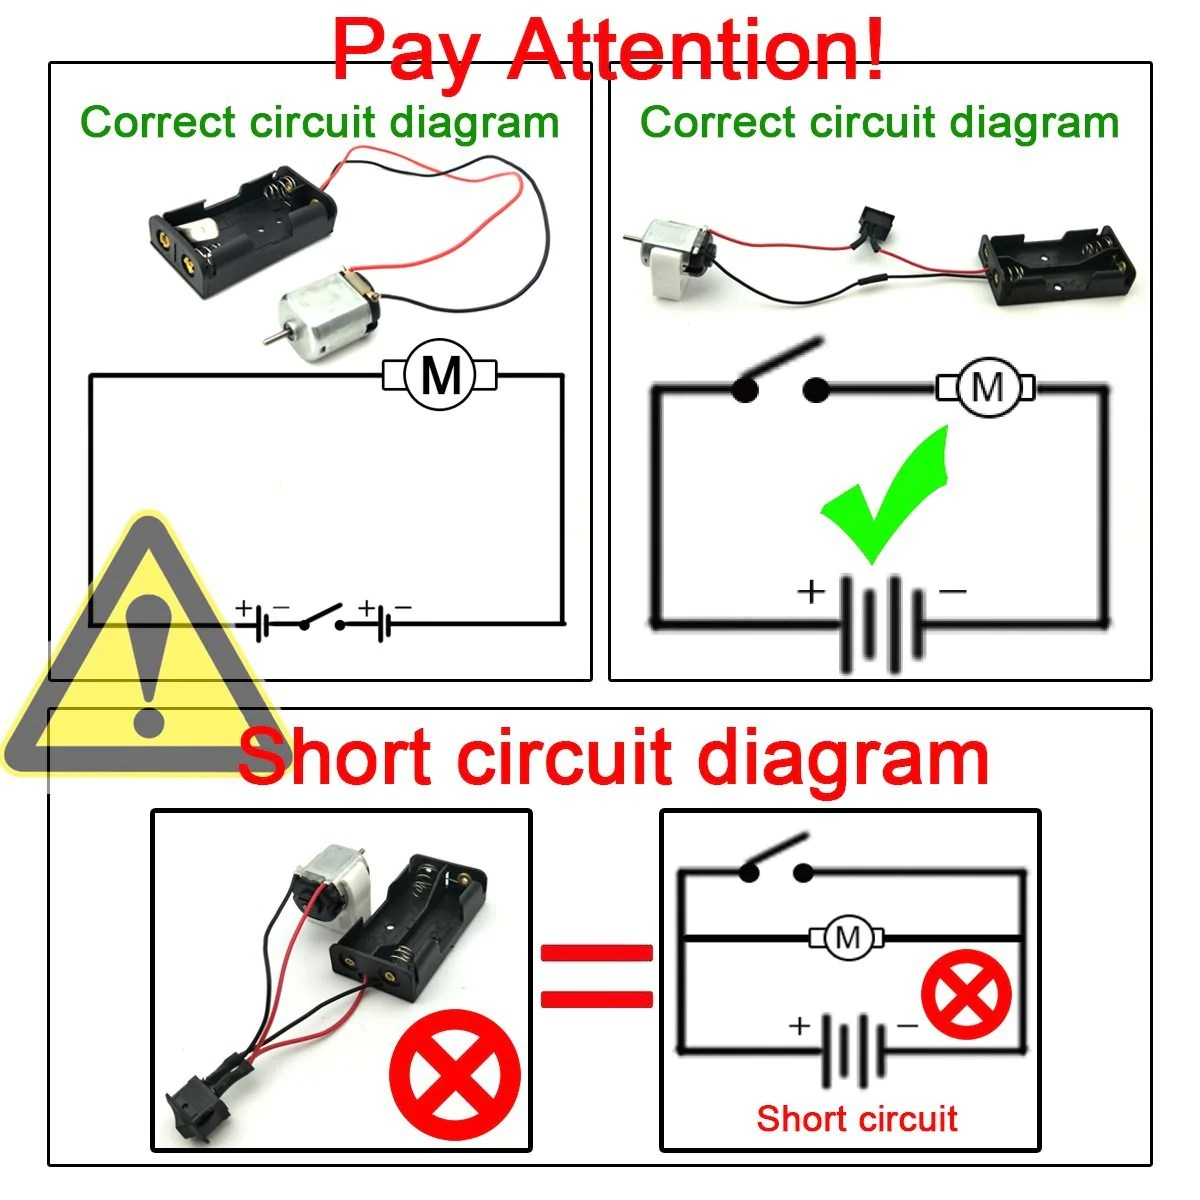 hight resolution of  eudax 6 set small dc motor mini electric hobby motors 1 5v 3v 15000rpm with